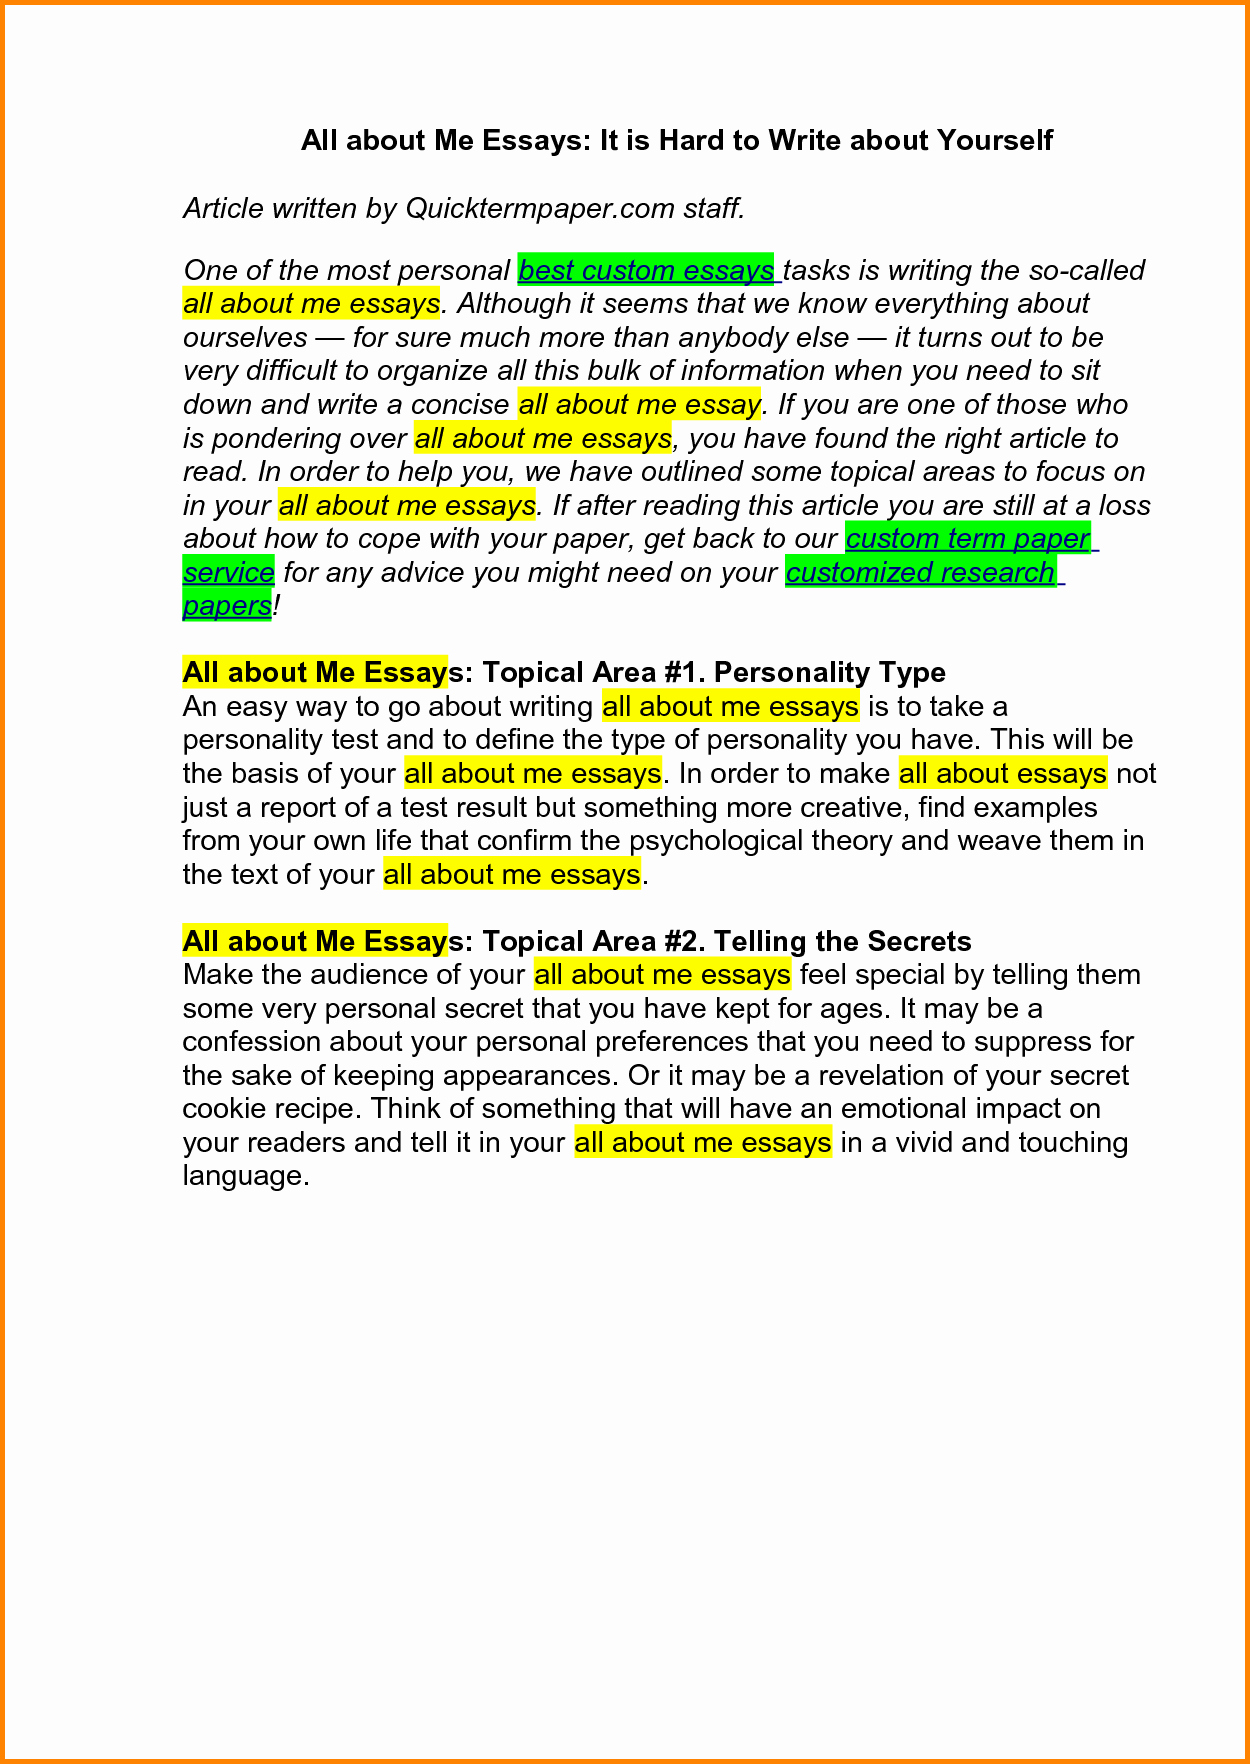 Personal Essay About Yourself Examples Luxury 54 Write An Essay How to Write An Essay Obfuscata